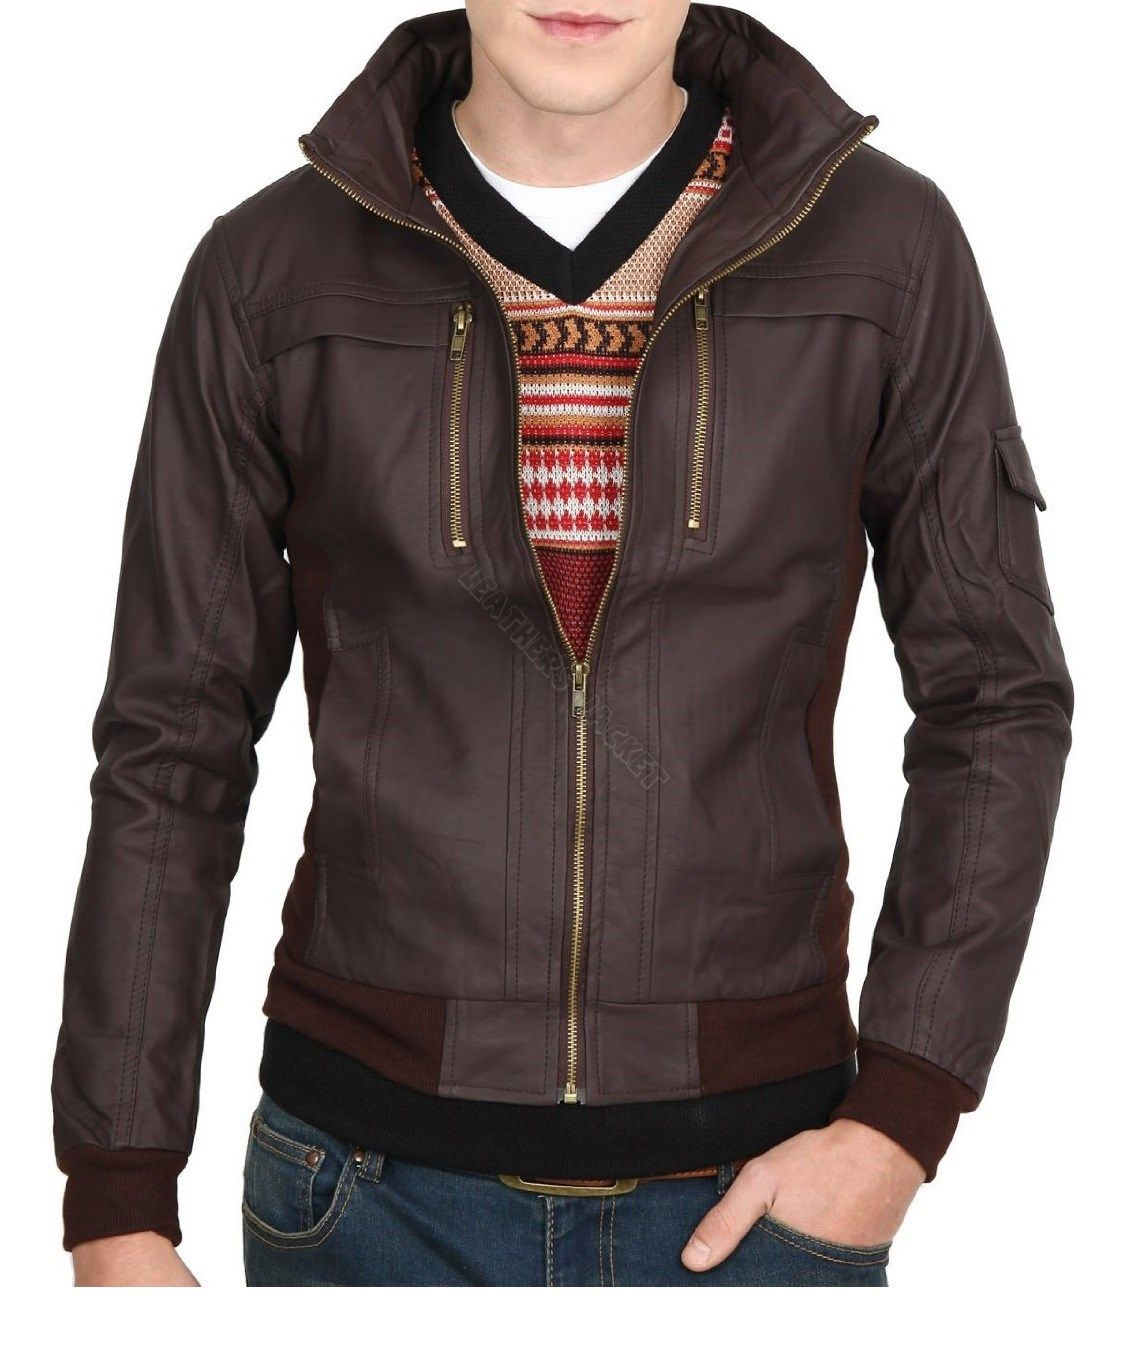 Handmade Men Slim Leather Jacket, Brown Biker Leather